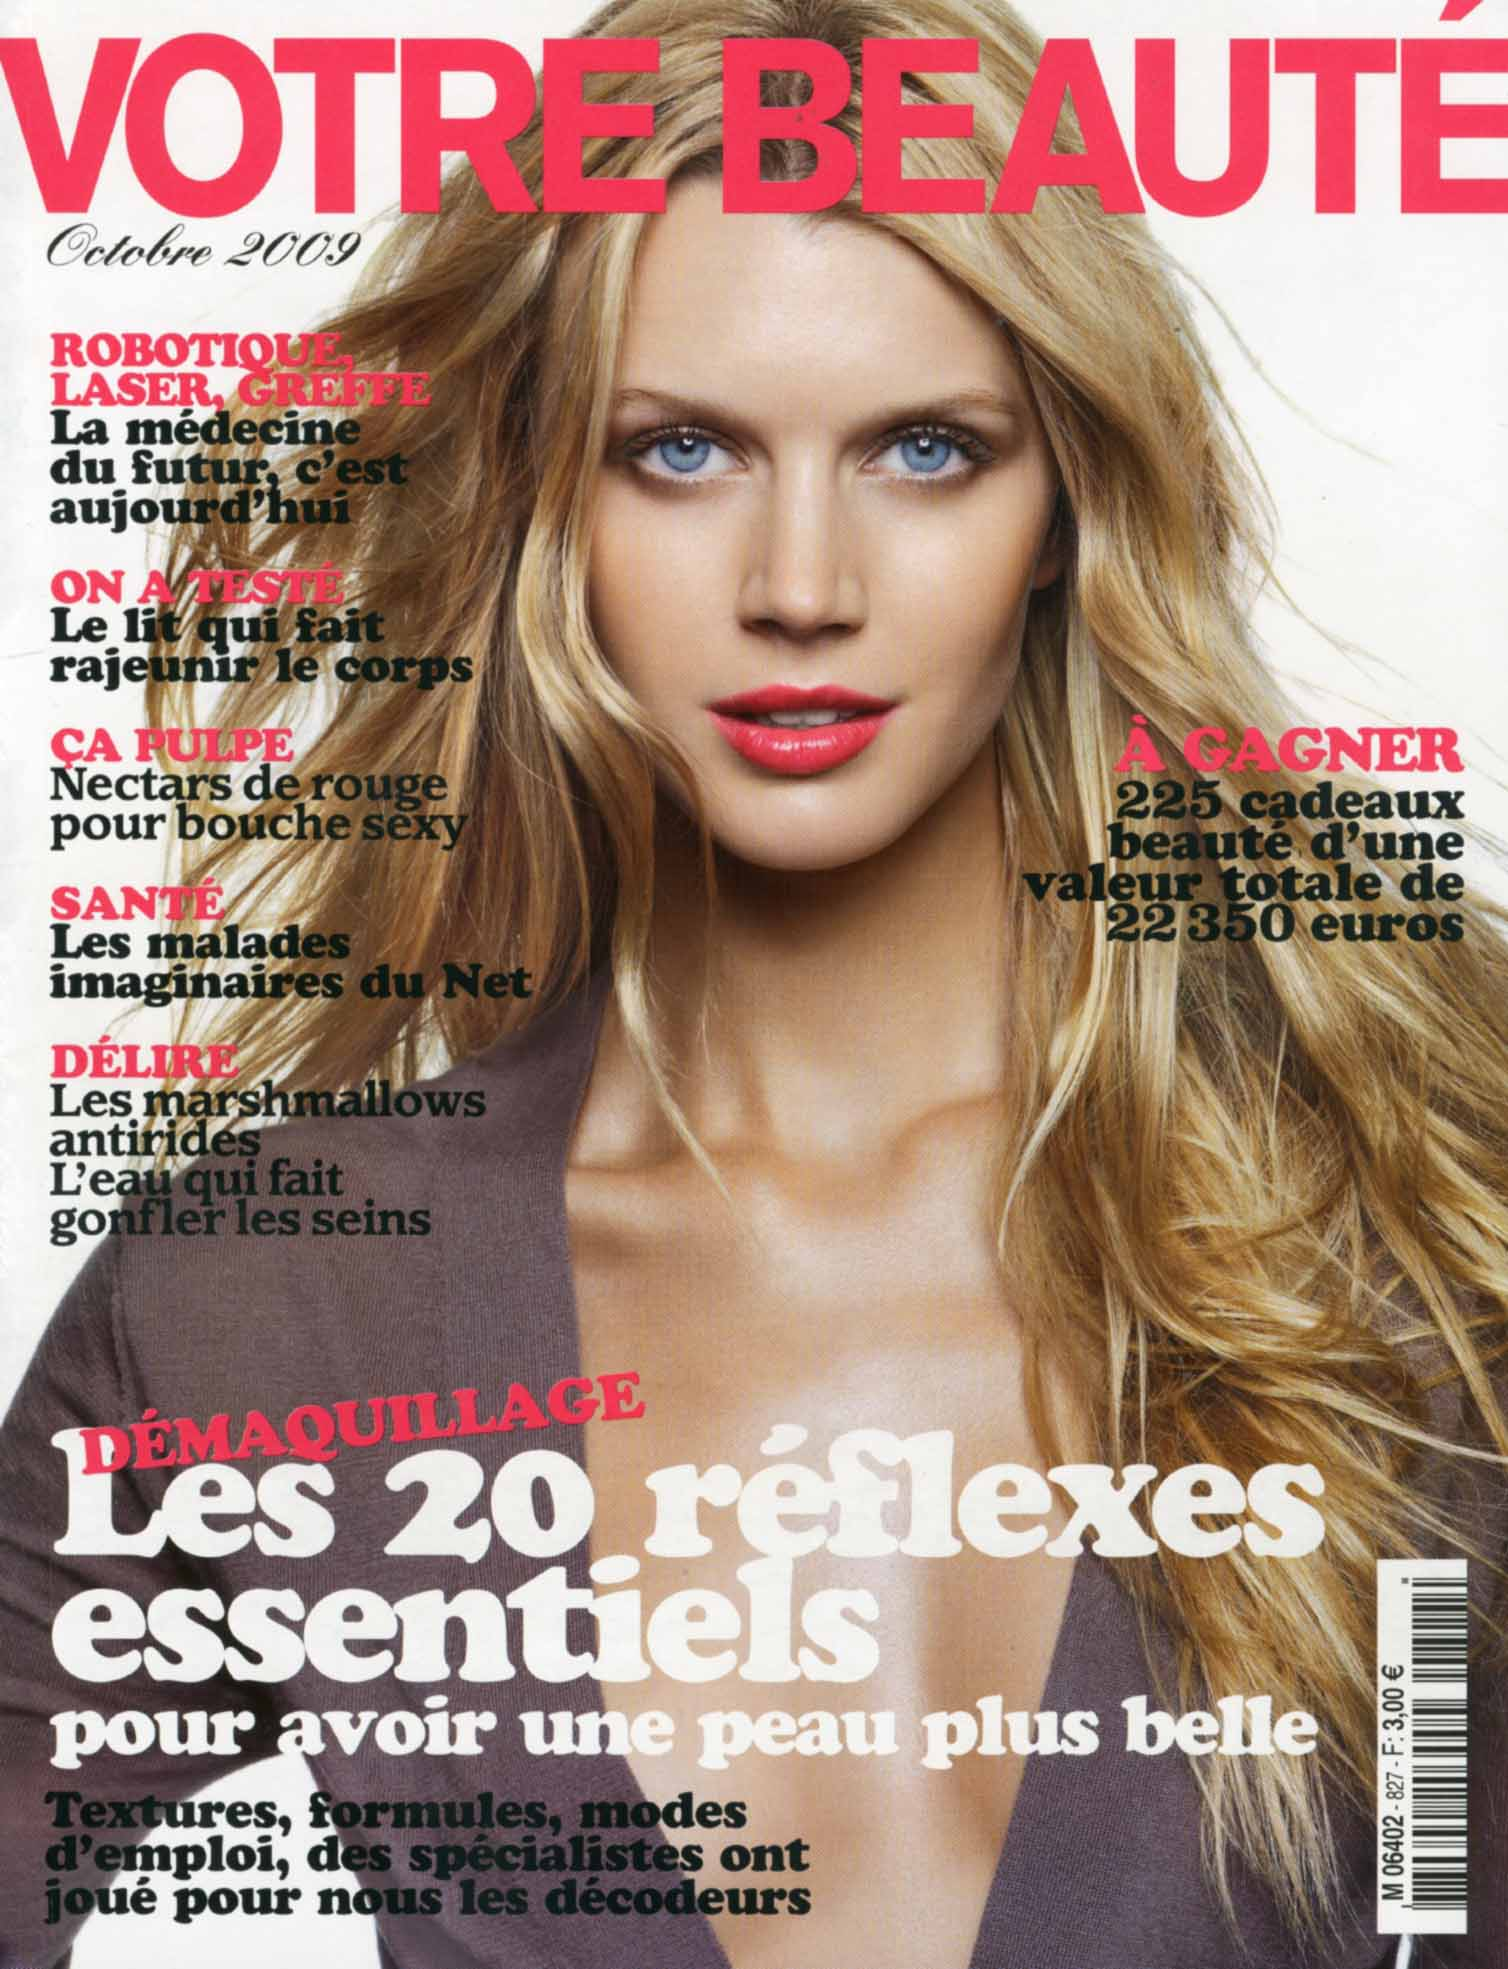 JAYNE MOORE in the cover of votre beaute Cover shot by Frederic Farre british bombshell jayne moore writer jayne moore jane moore